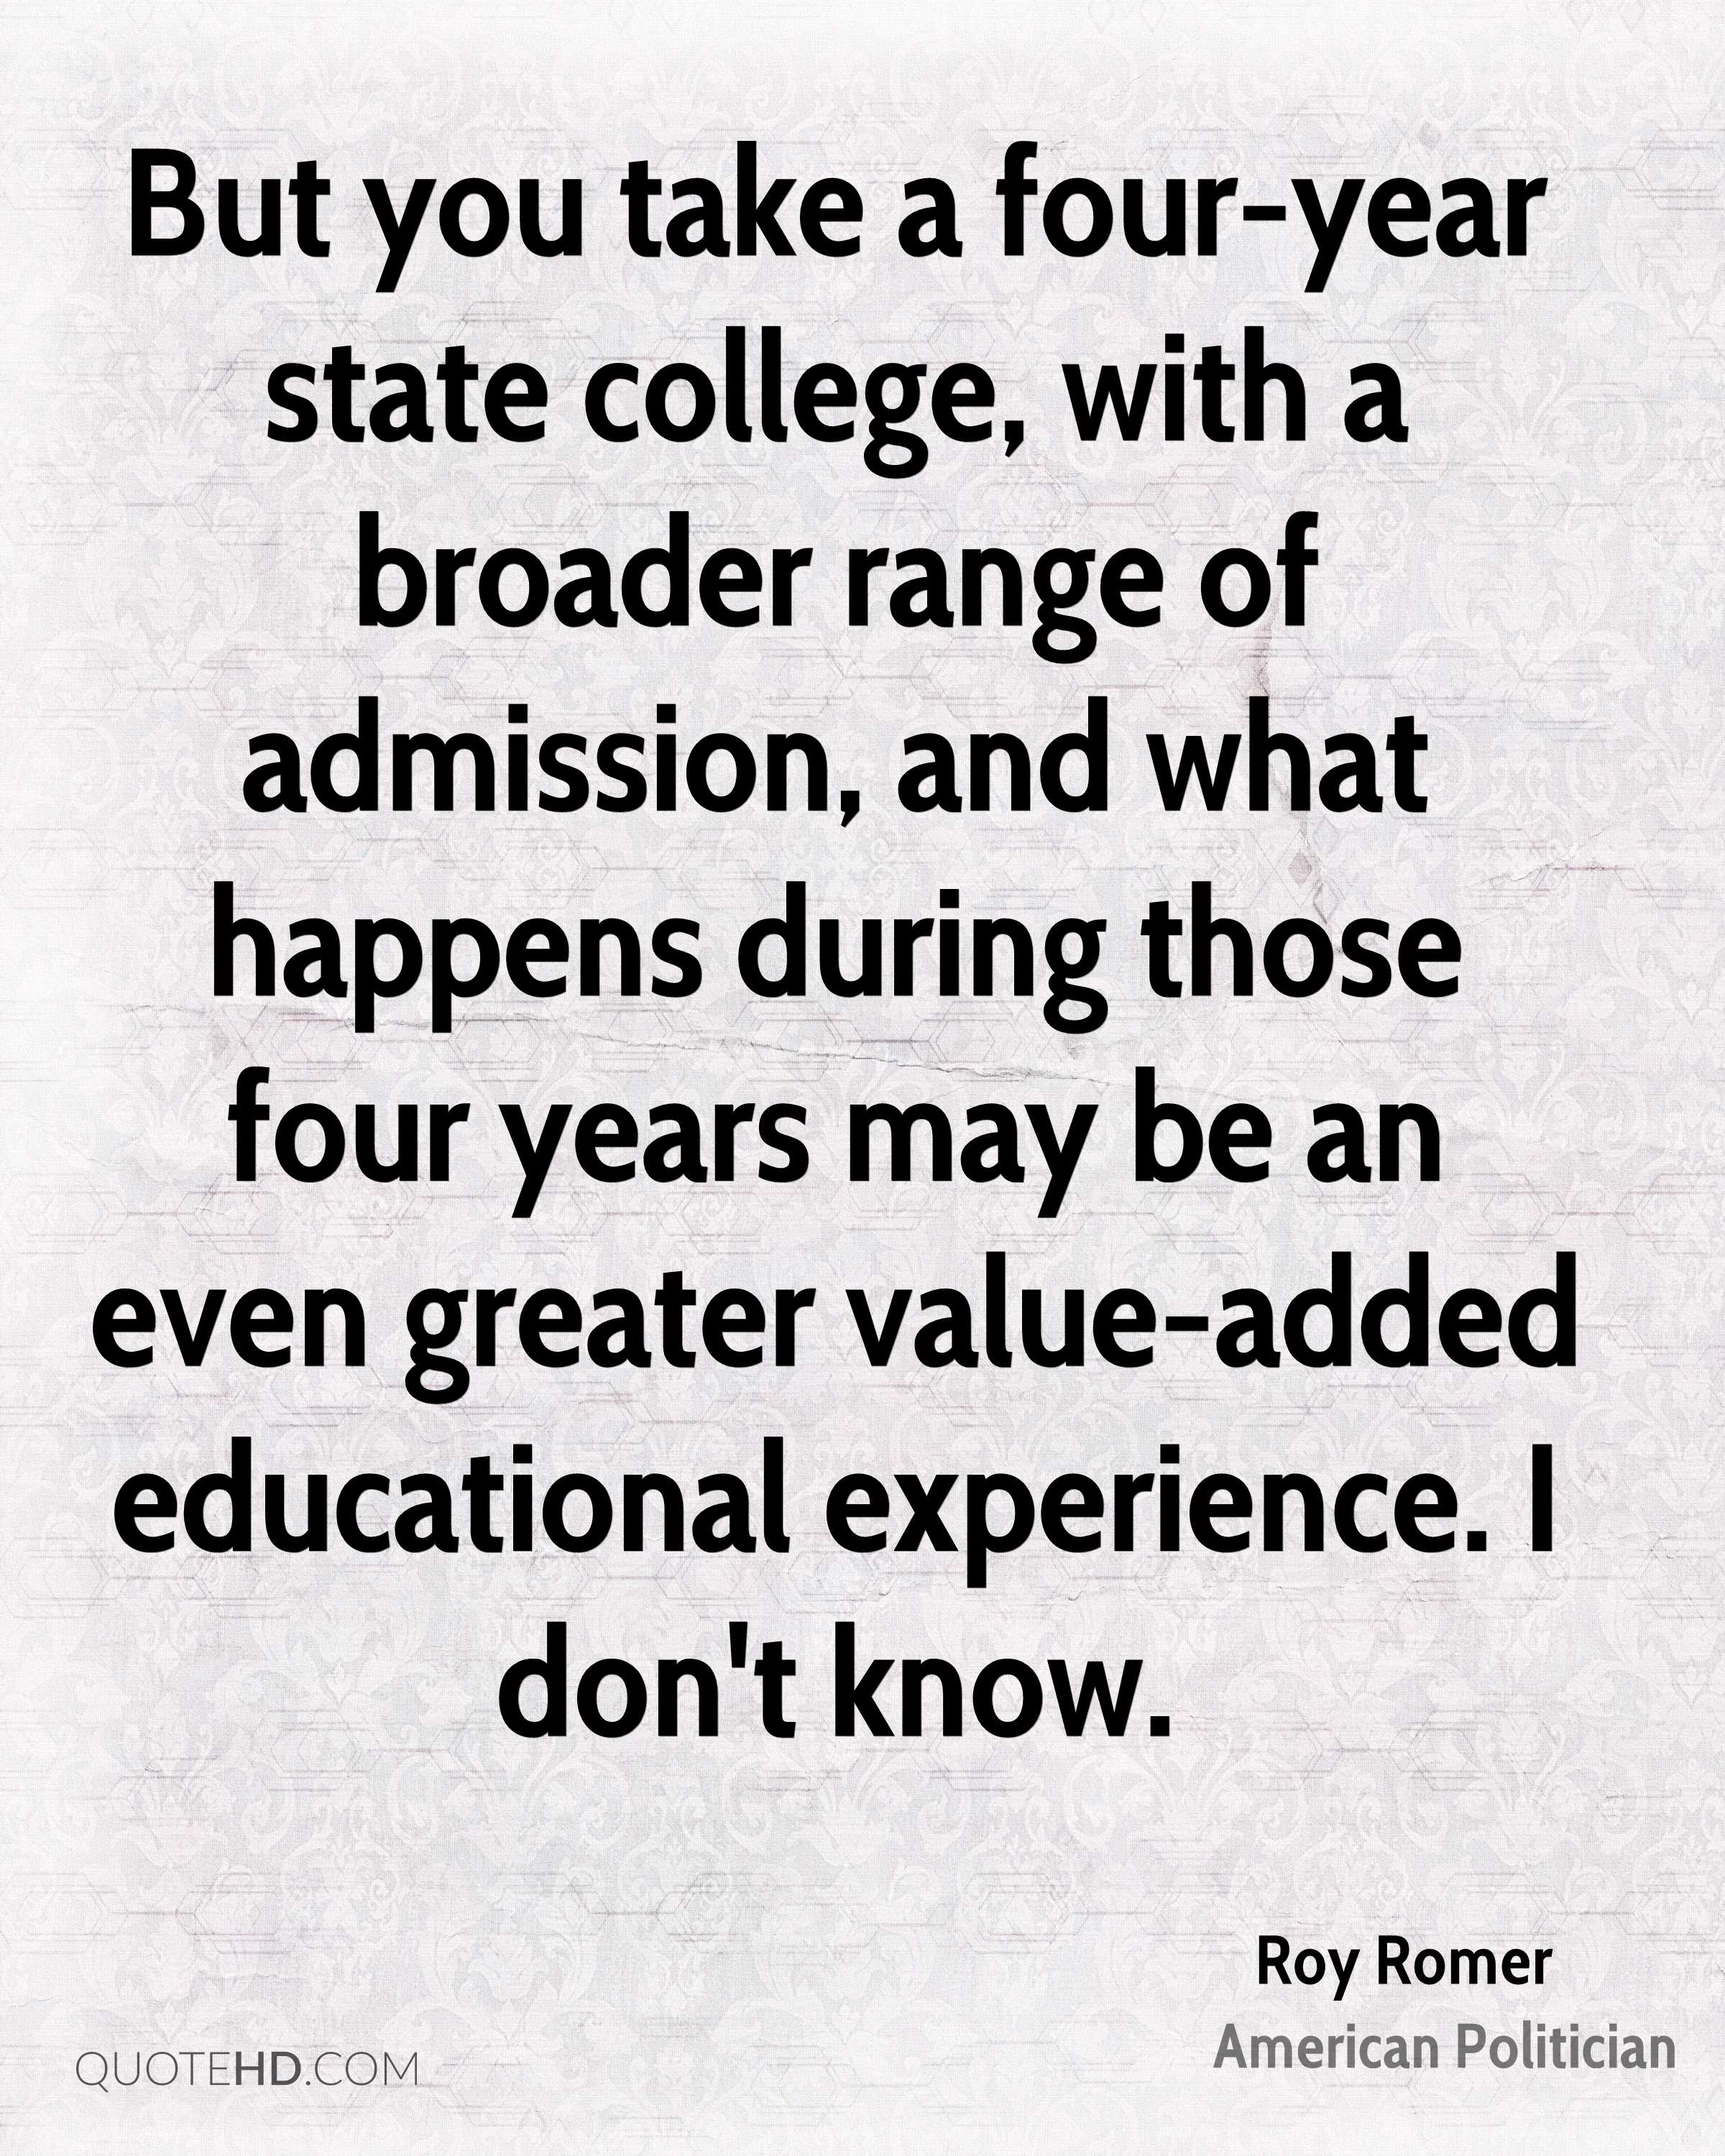 But you take a four-year state college, with a broader range of admission, and what happens during those four years may be an even greater value-added educational experience. I don't know.